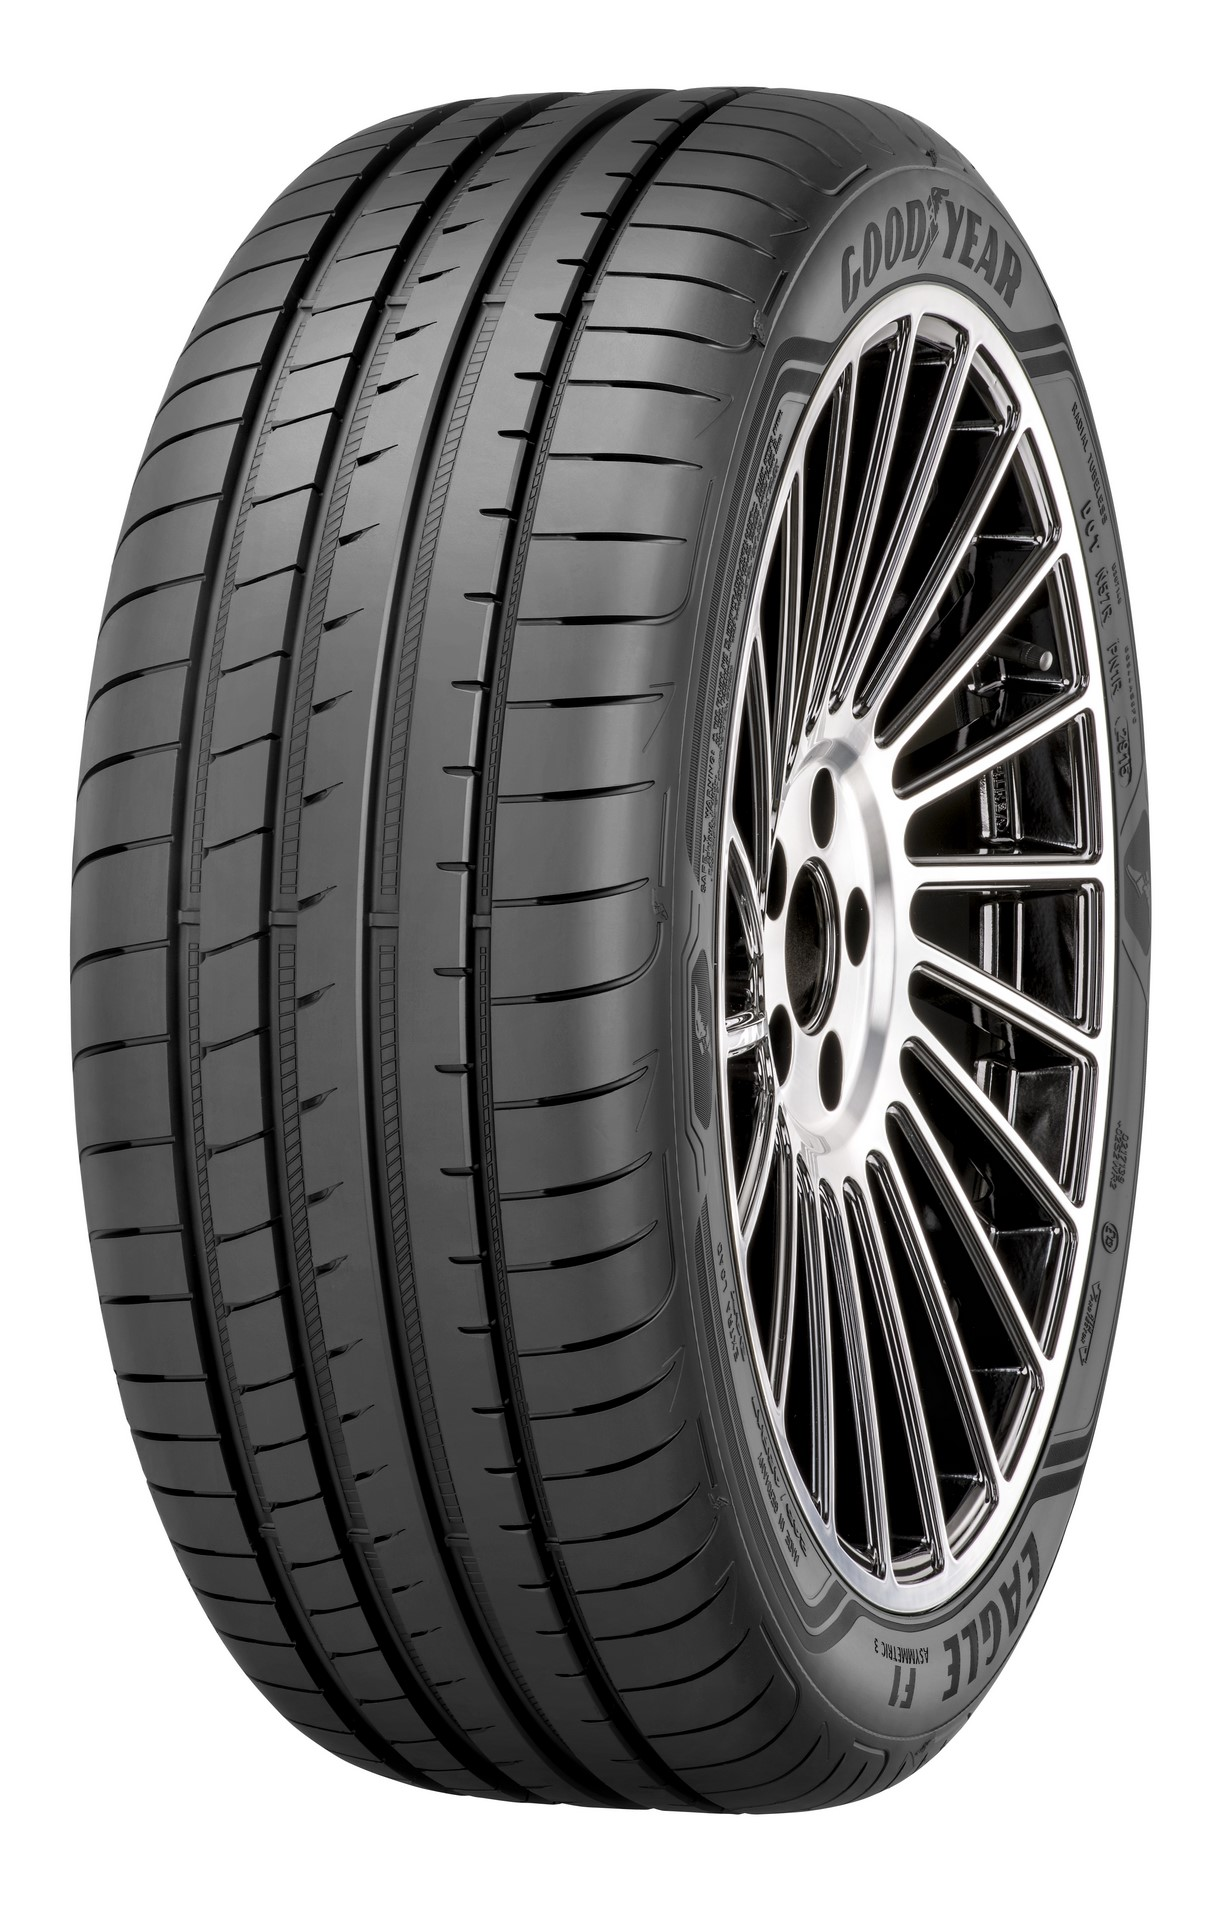 Goodyear Intelligent Tire (6)